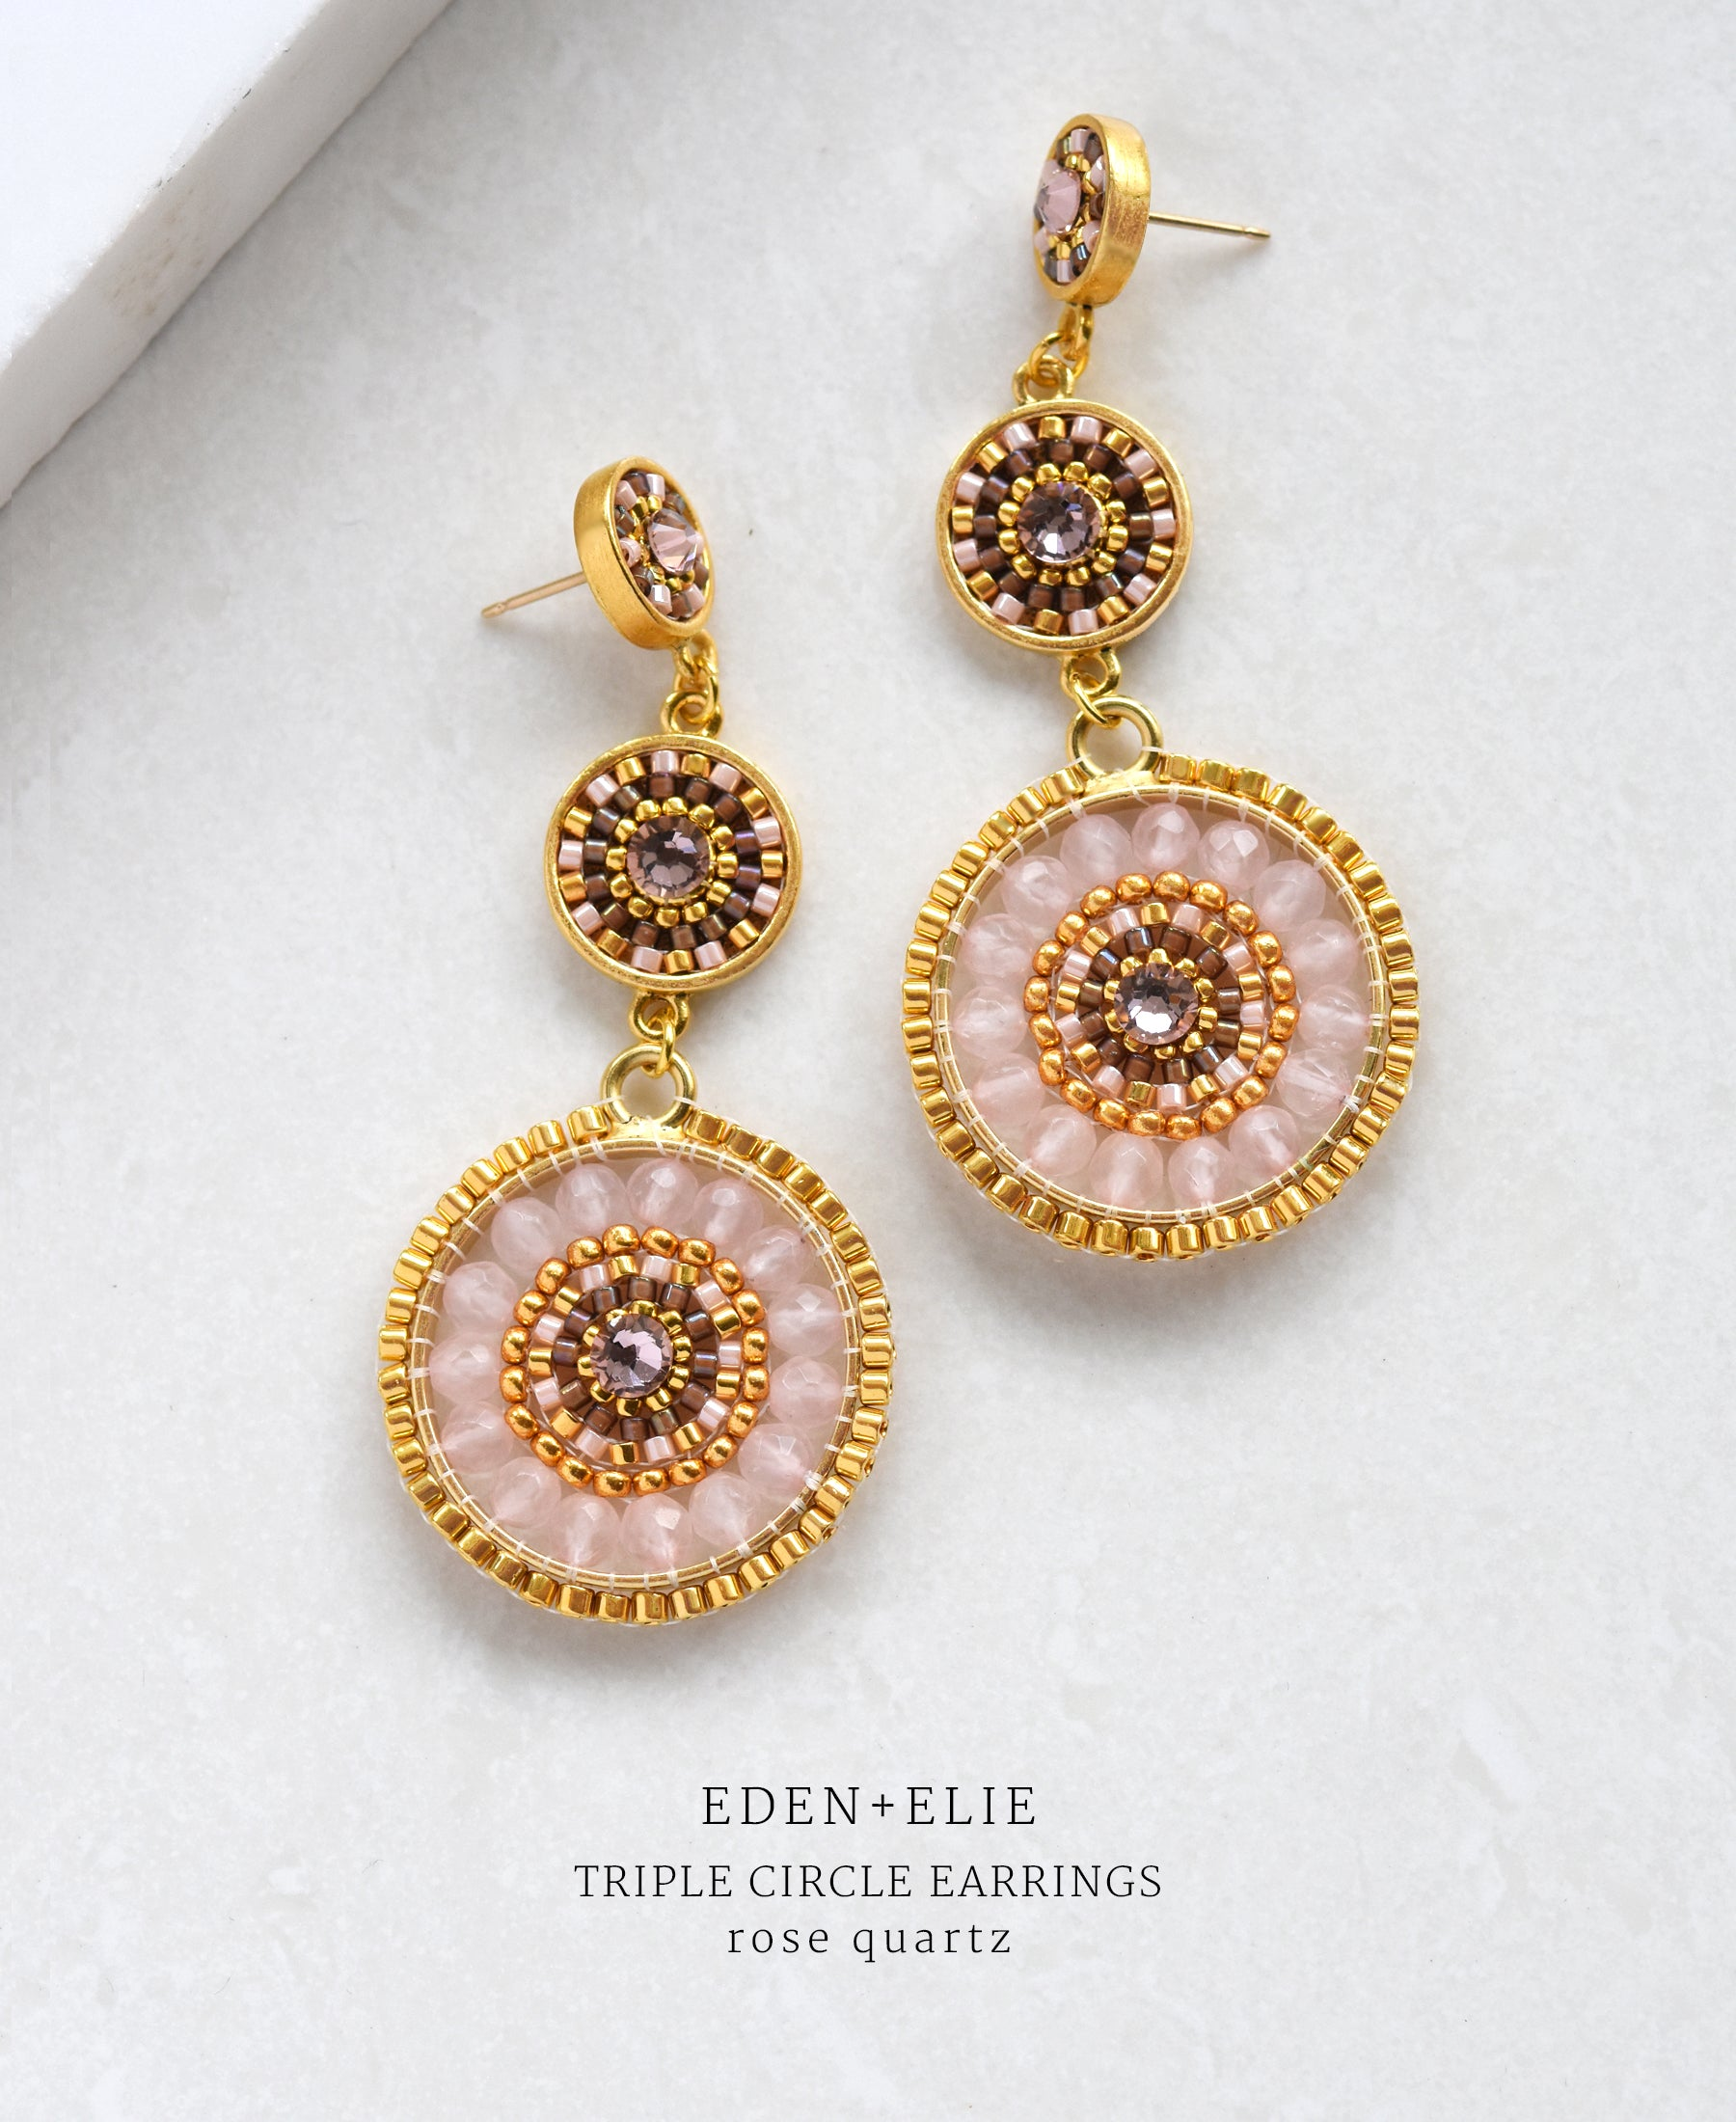 EDEN + ELIE Luxe triple circle statement drop earrings - rose quartz